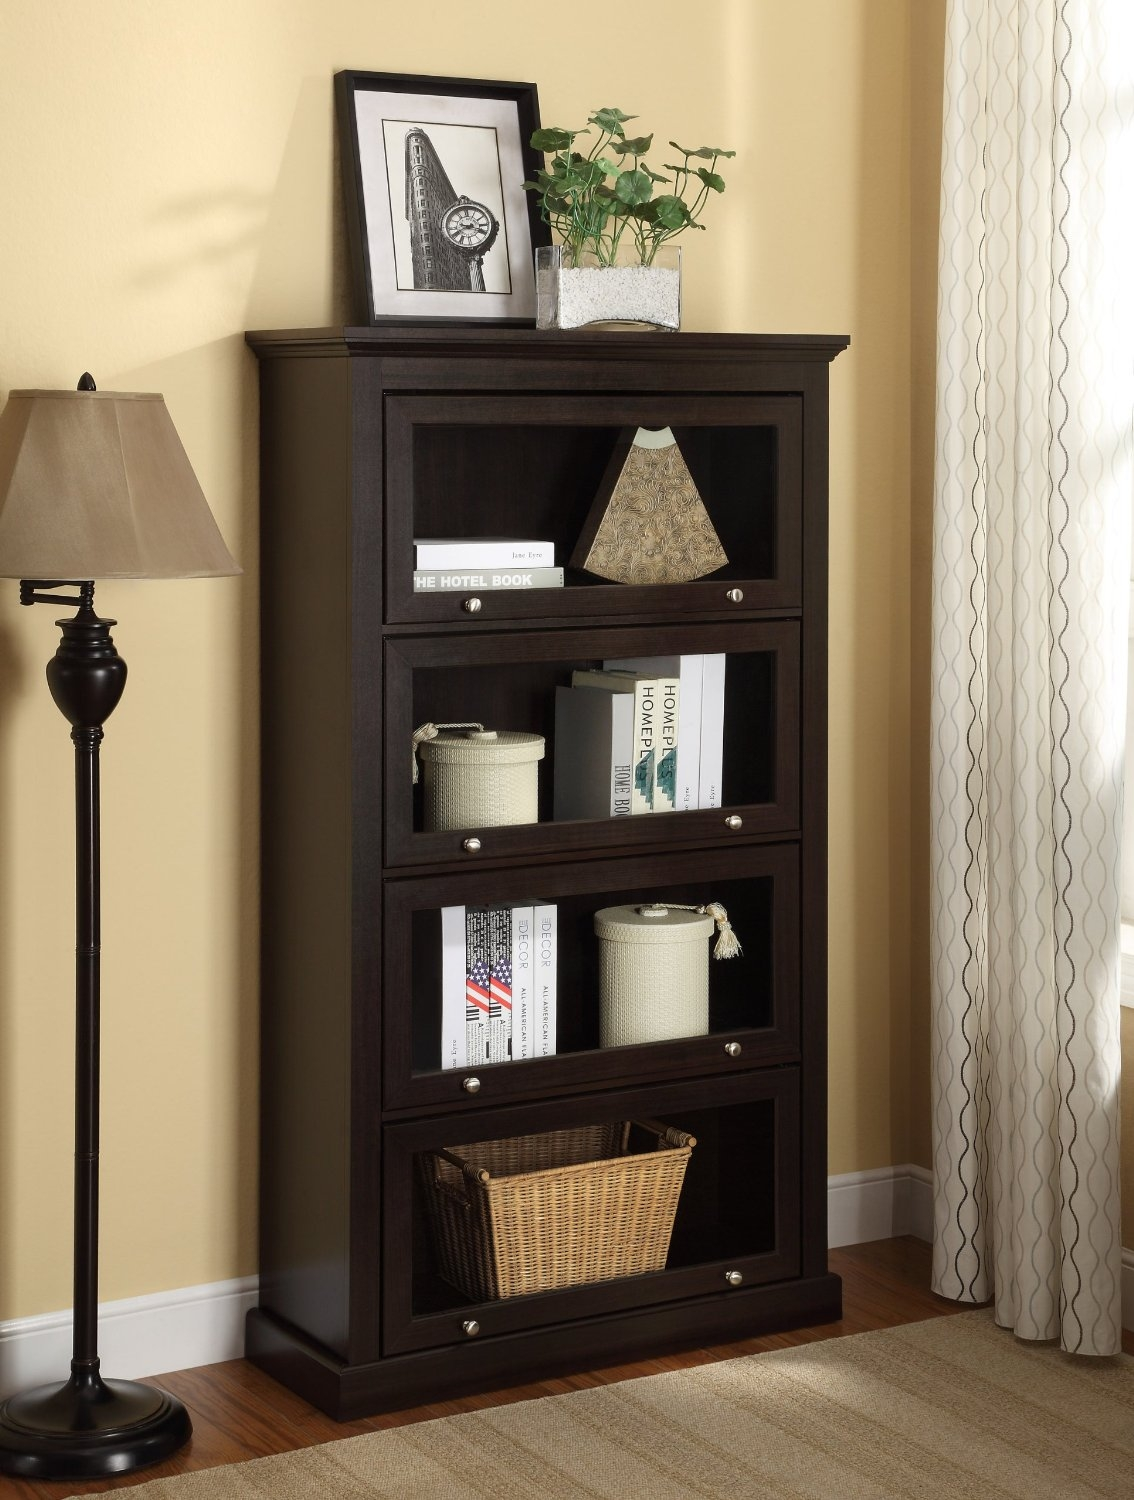 Threshold Storage Cabinet Espresso